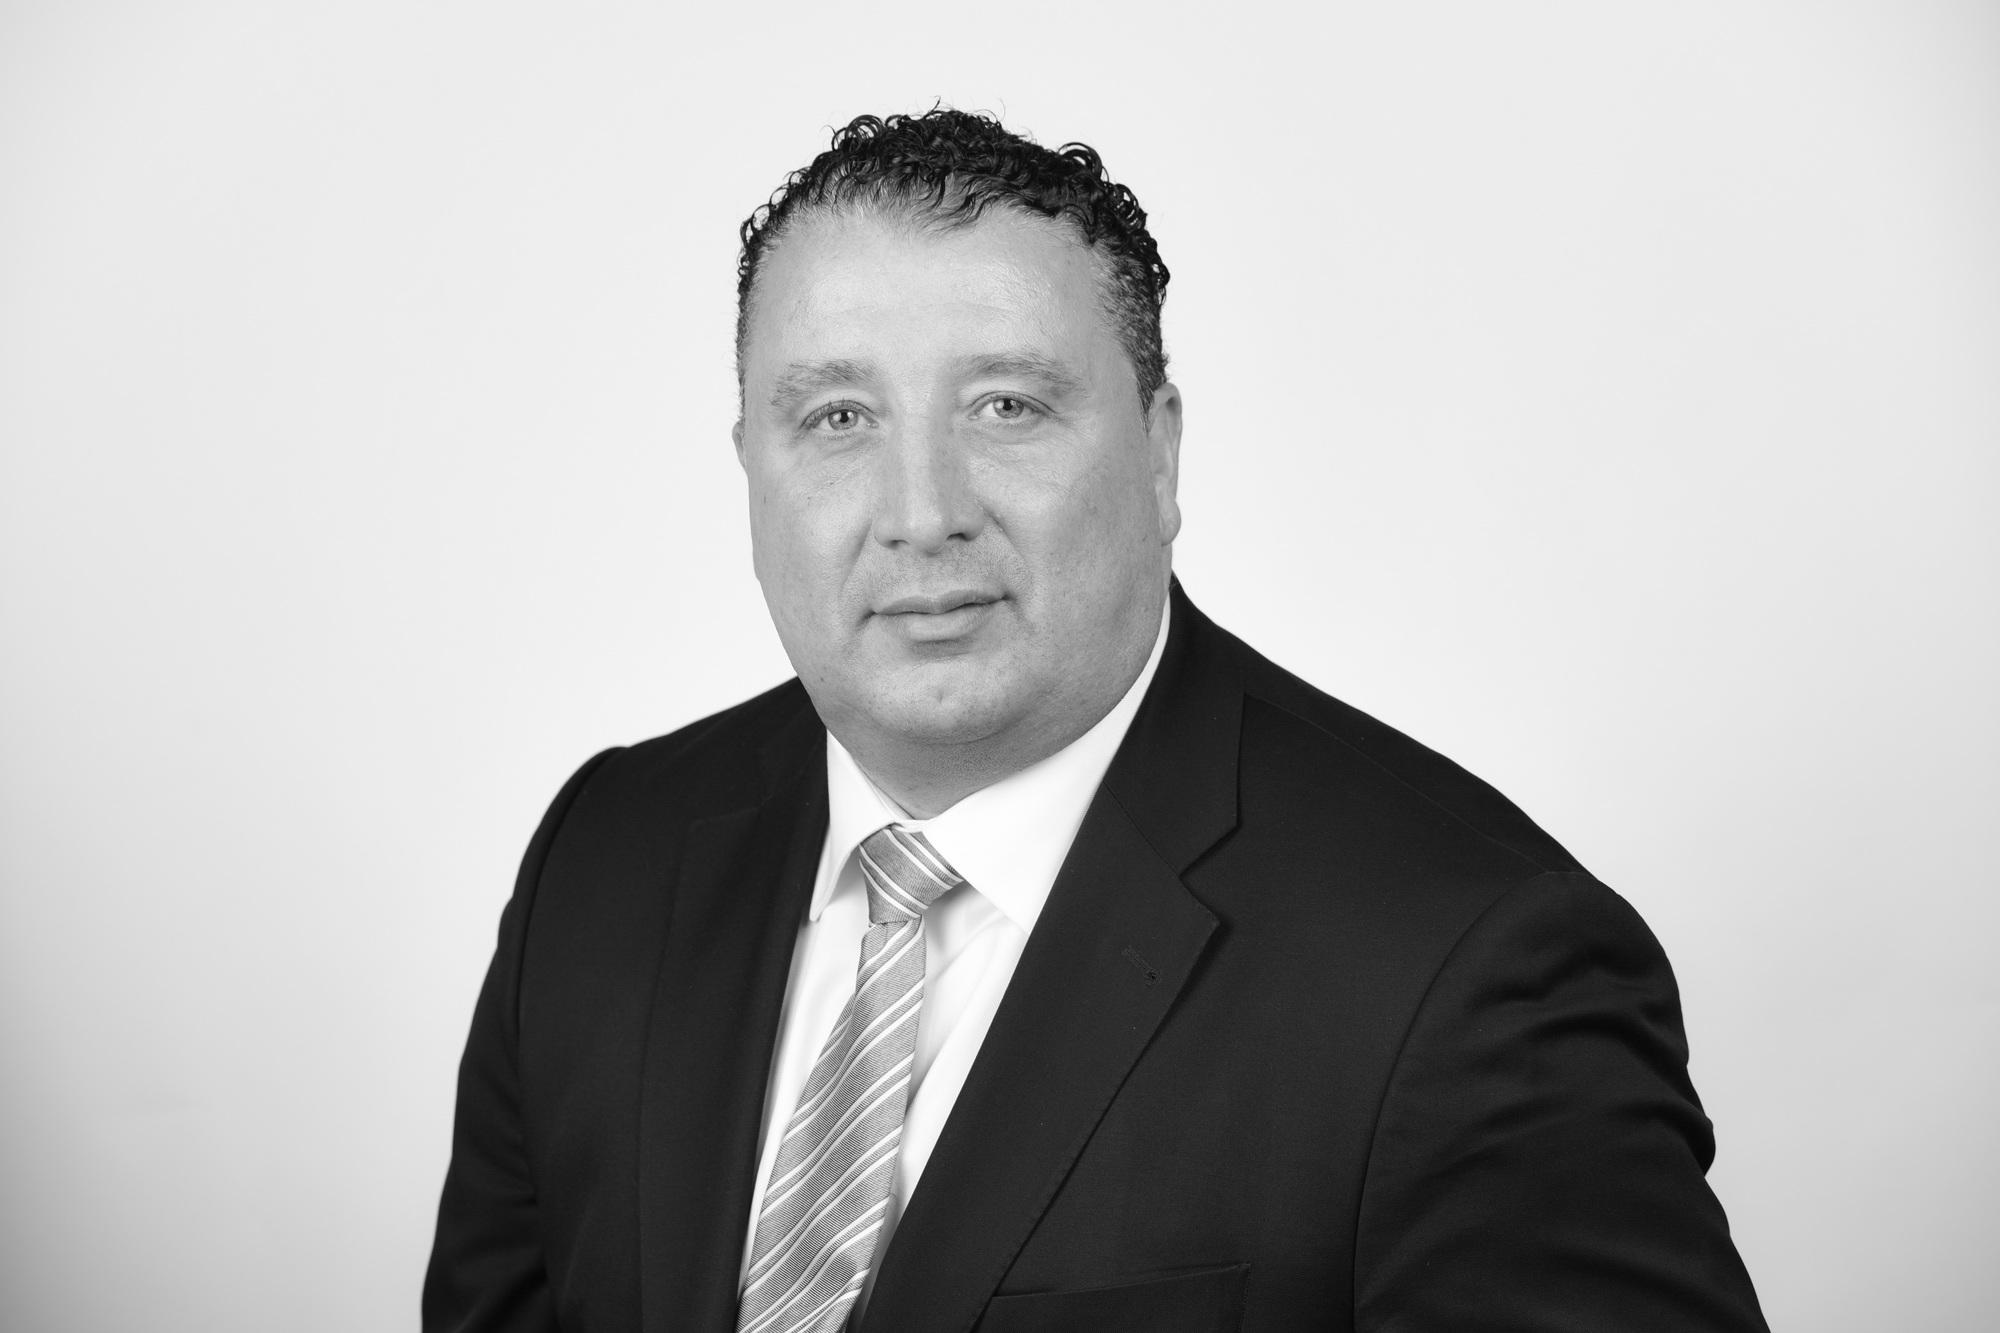 TD Bank Private Banking - Sandro Campagna - North York, ON M2N 6L7 - (416)385-7306 | ShowMeLocal.com